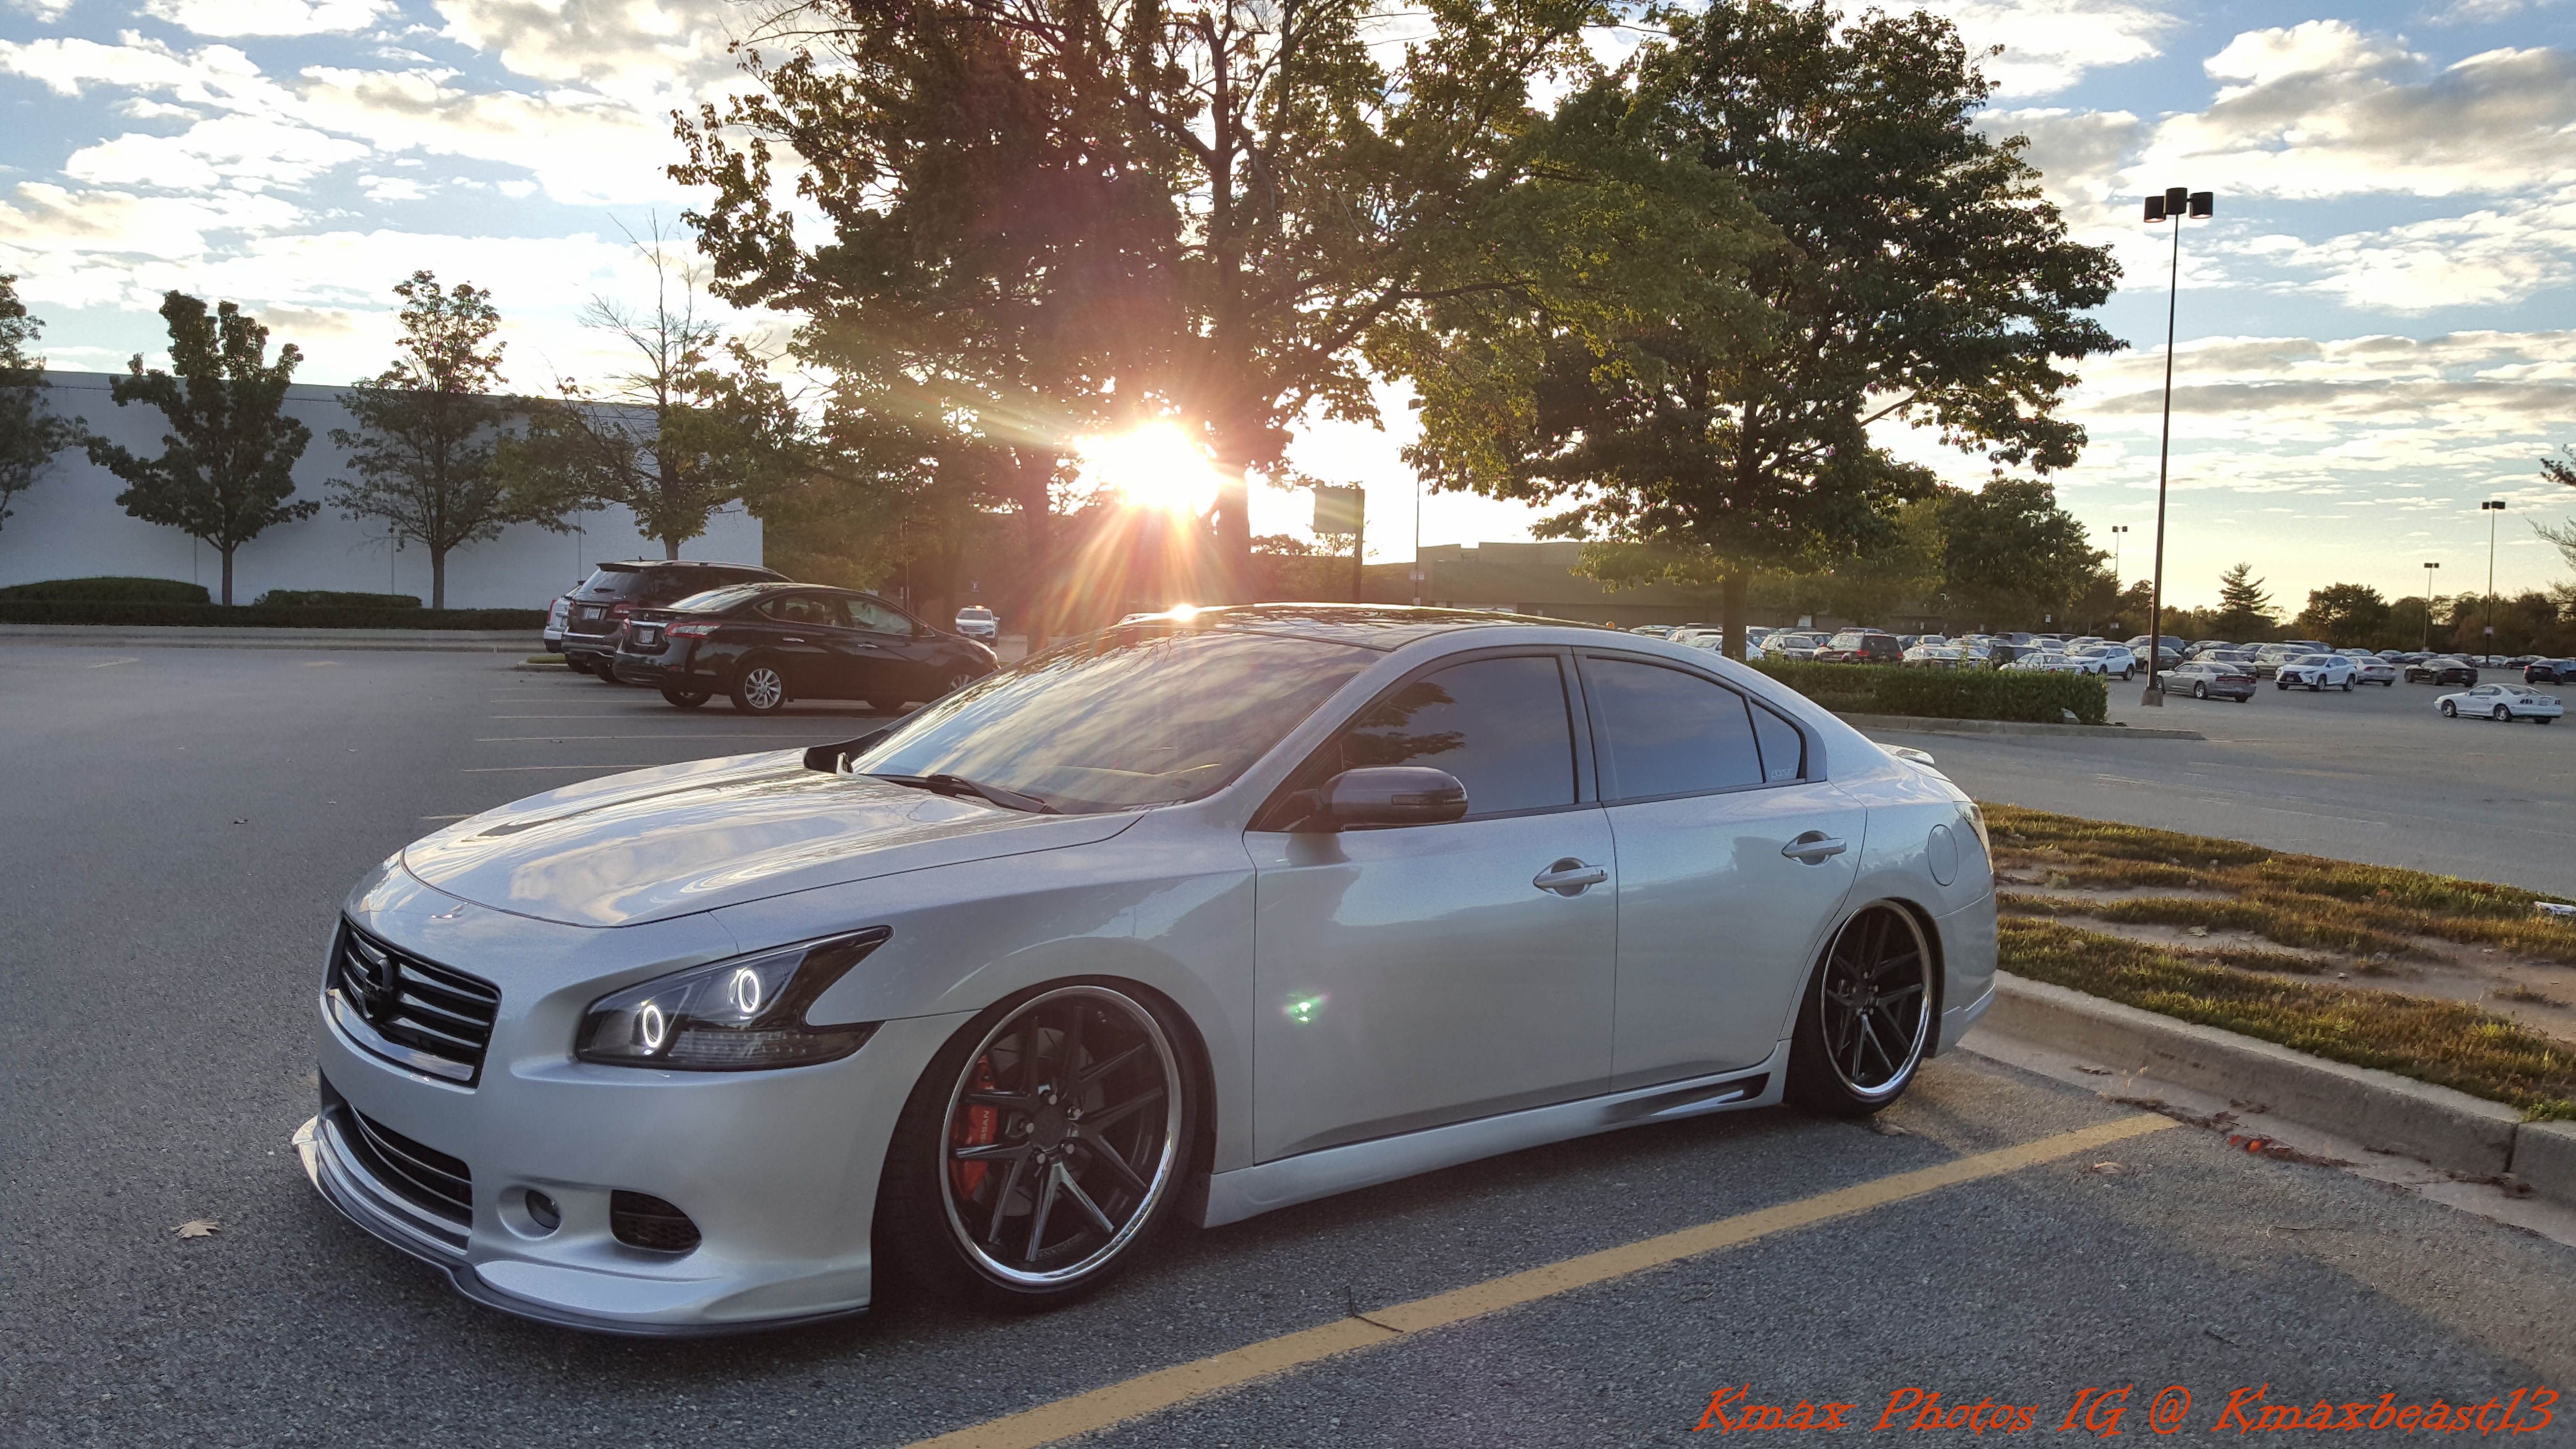 Pin by CarNewsMag com on Kyle's 7th Gen Maxima | Nissan